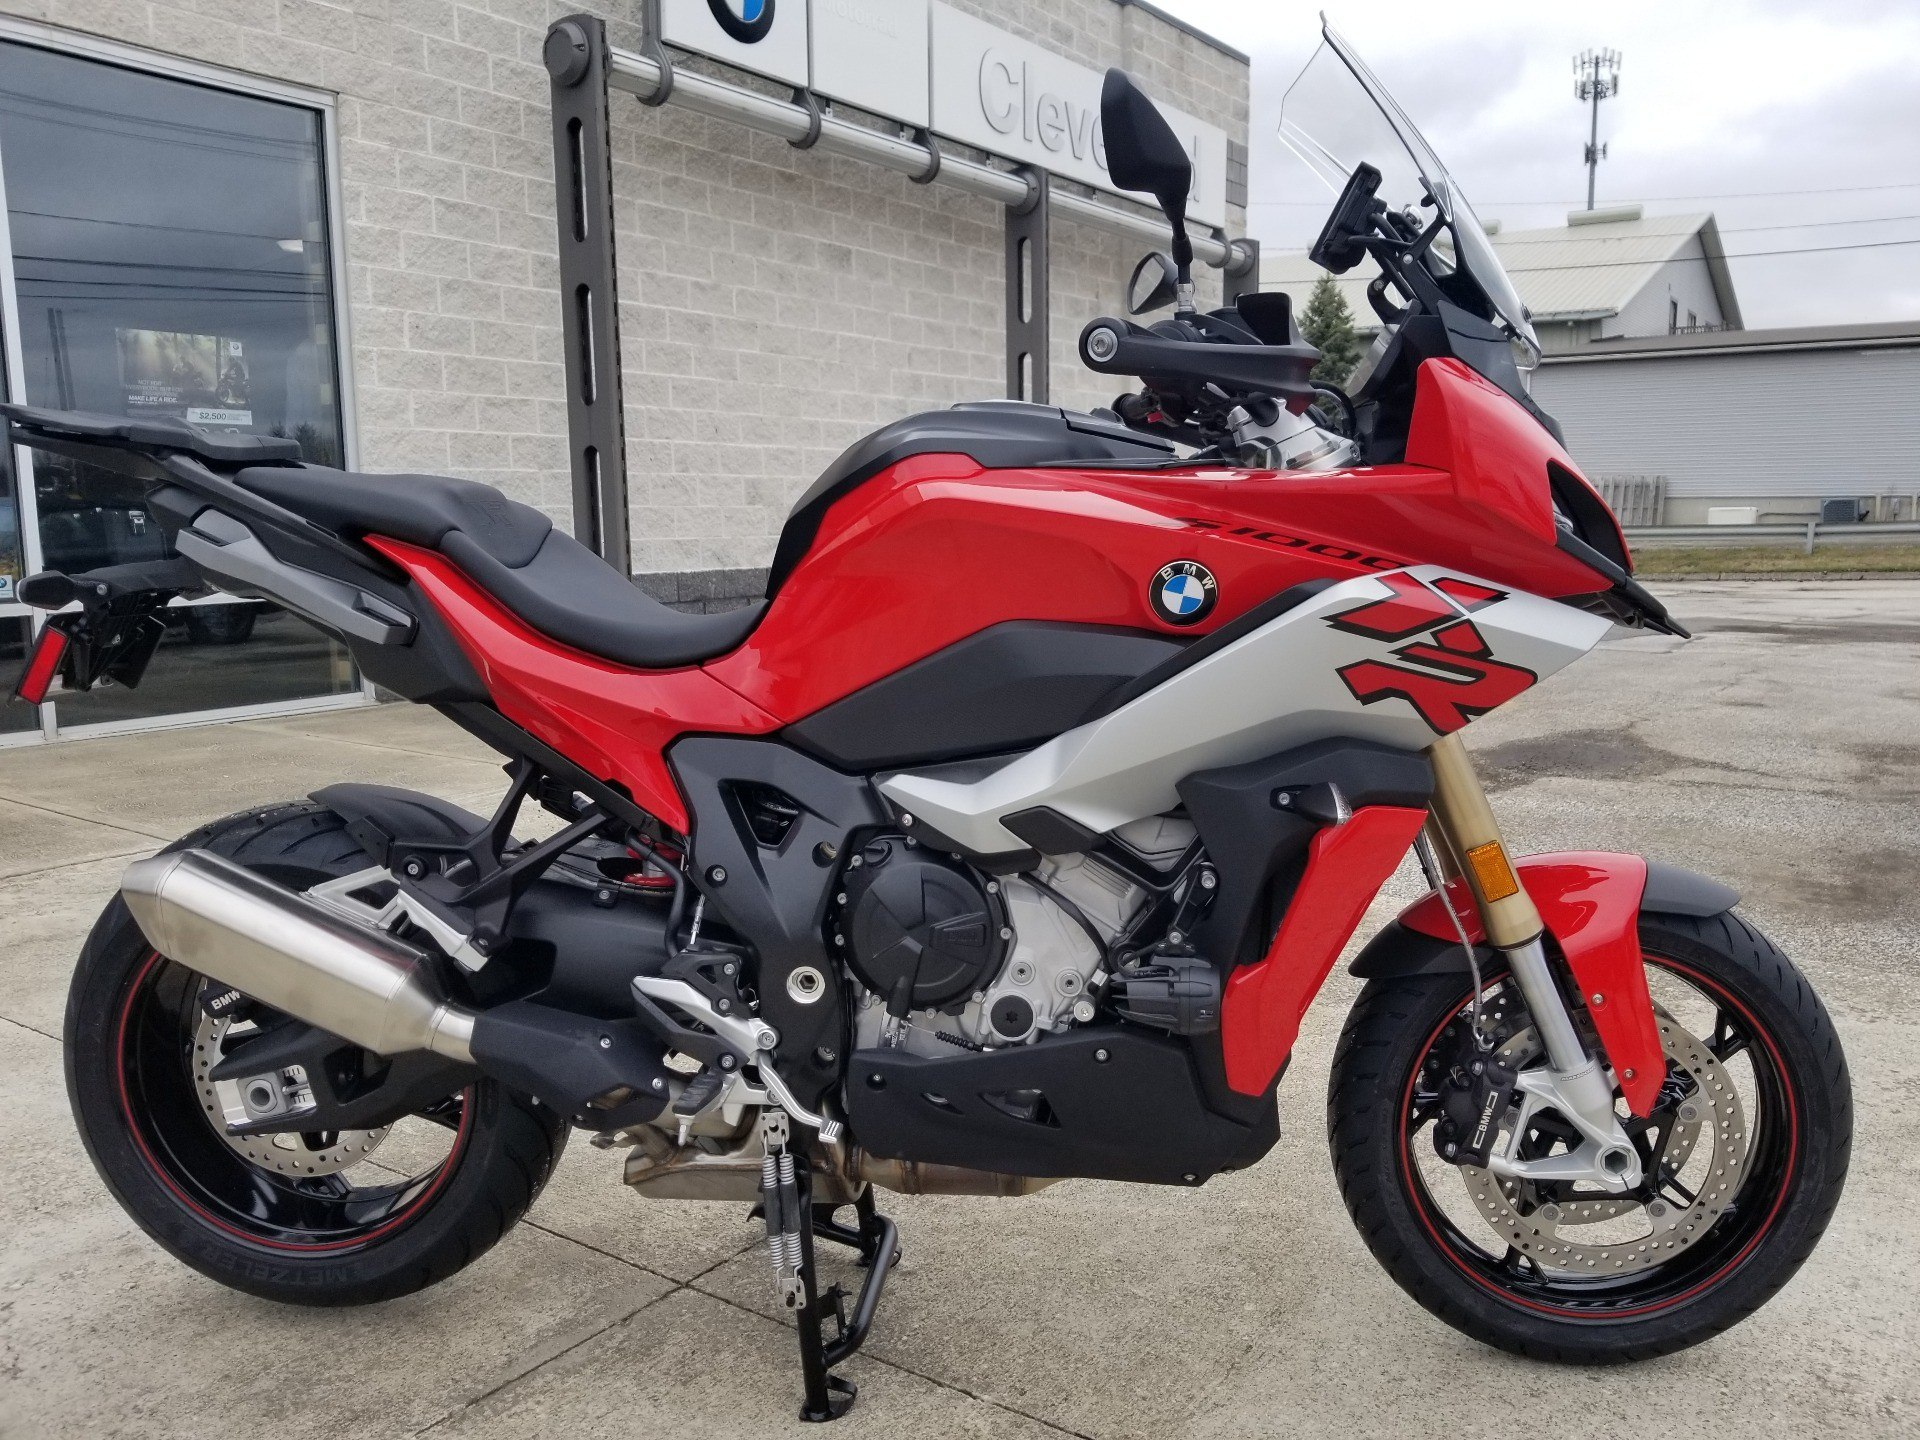 New 2020 BMW S 1000 XR Motorcycles in Aurora, OH | Stock ...